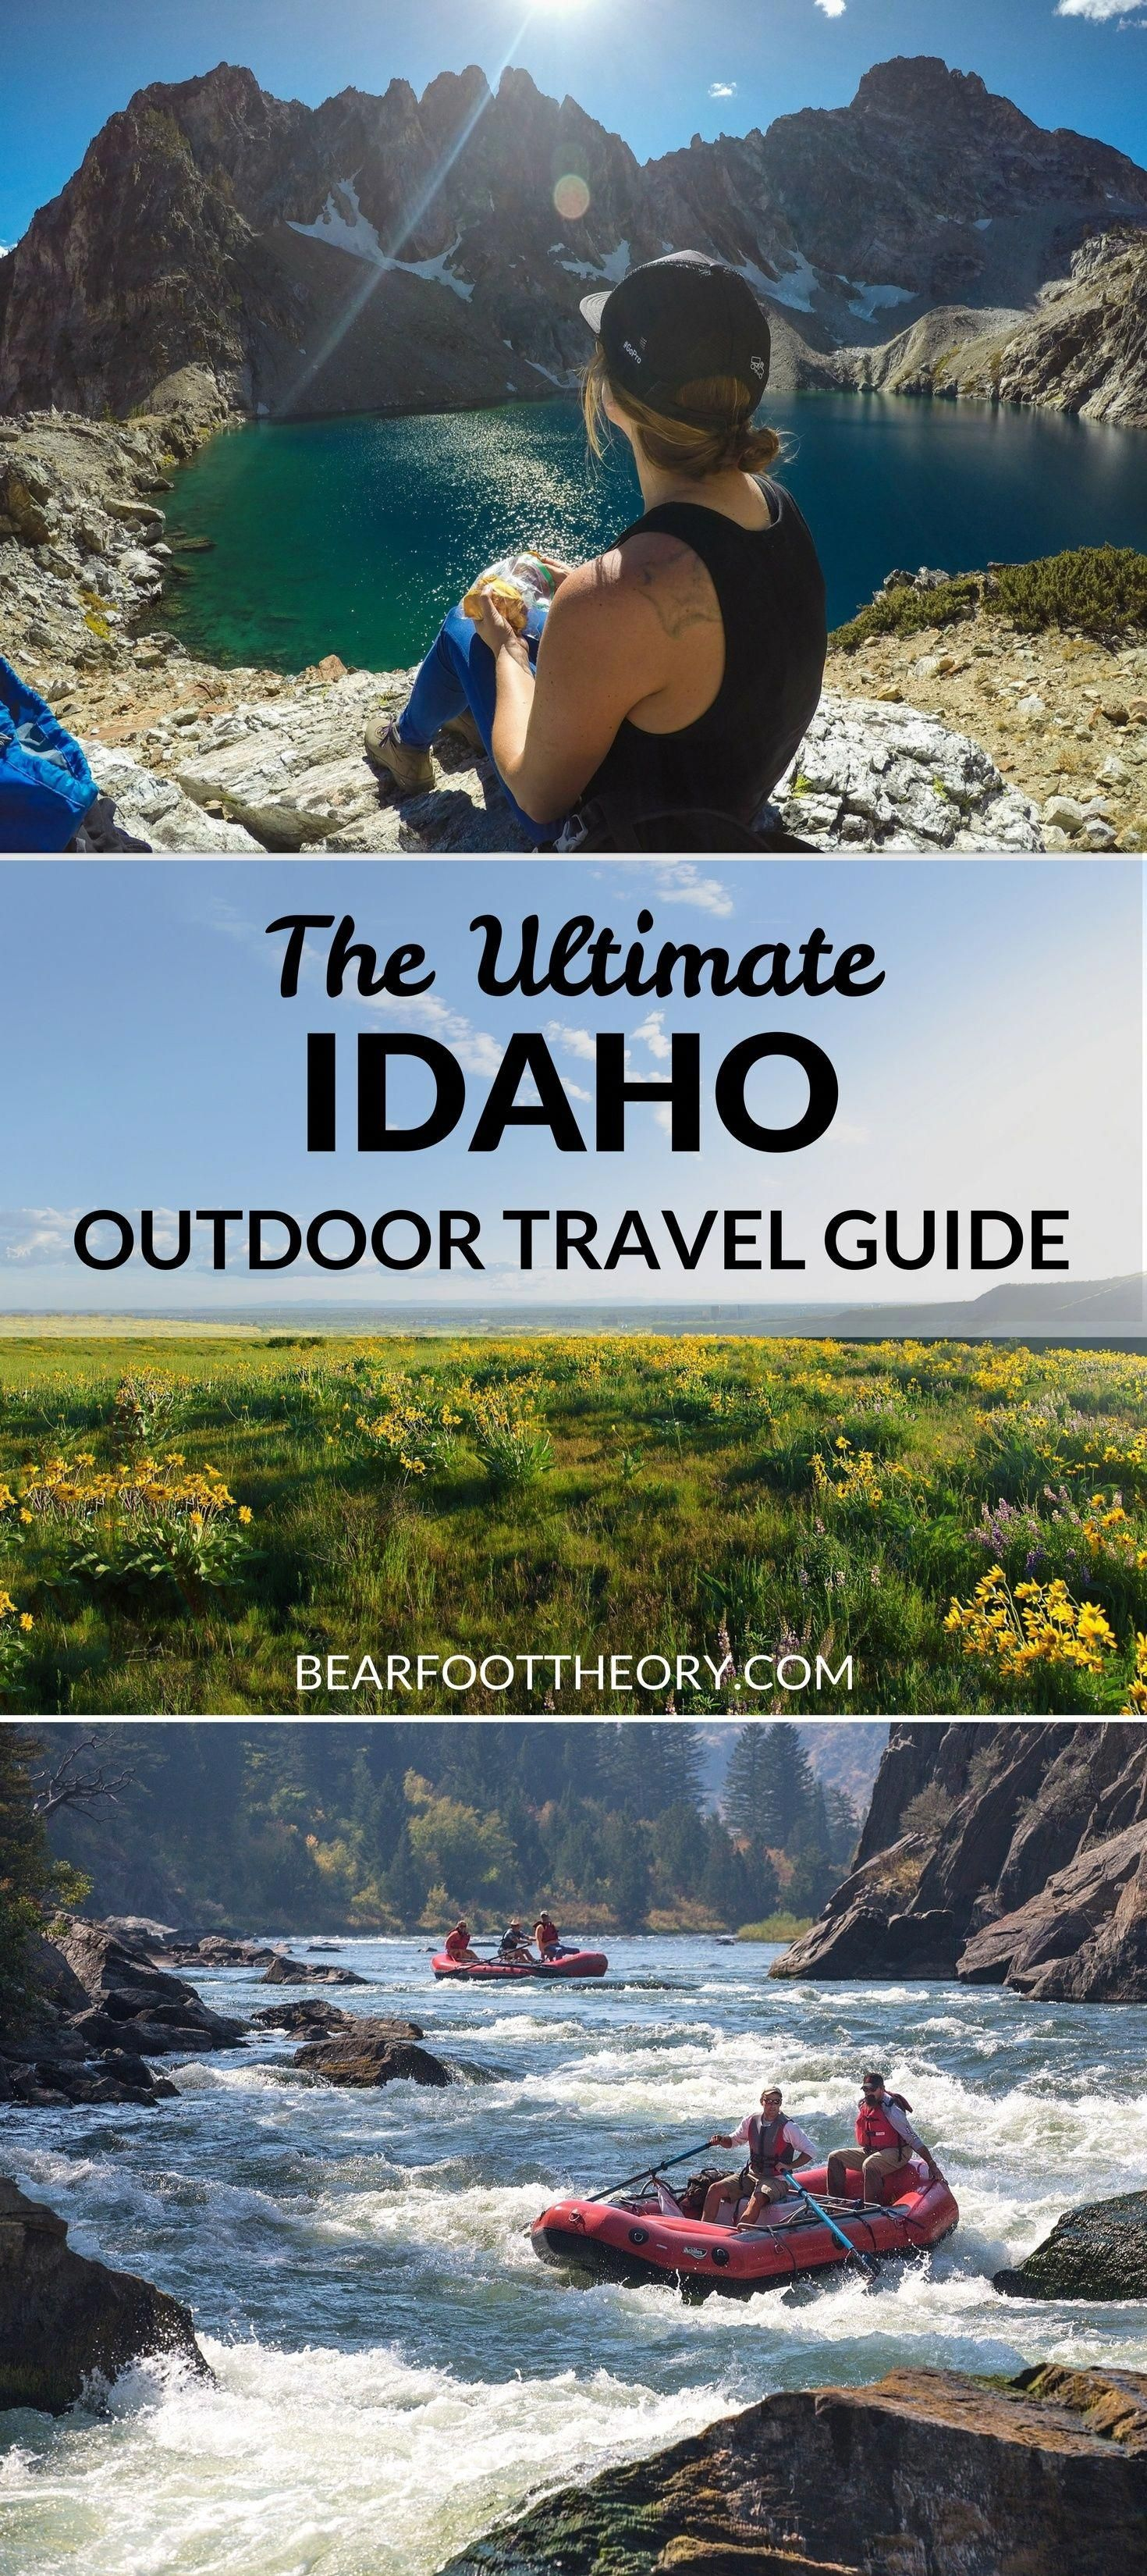 Plan an adventurous trip to Idaho with our outdoor travel